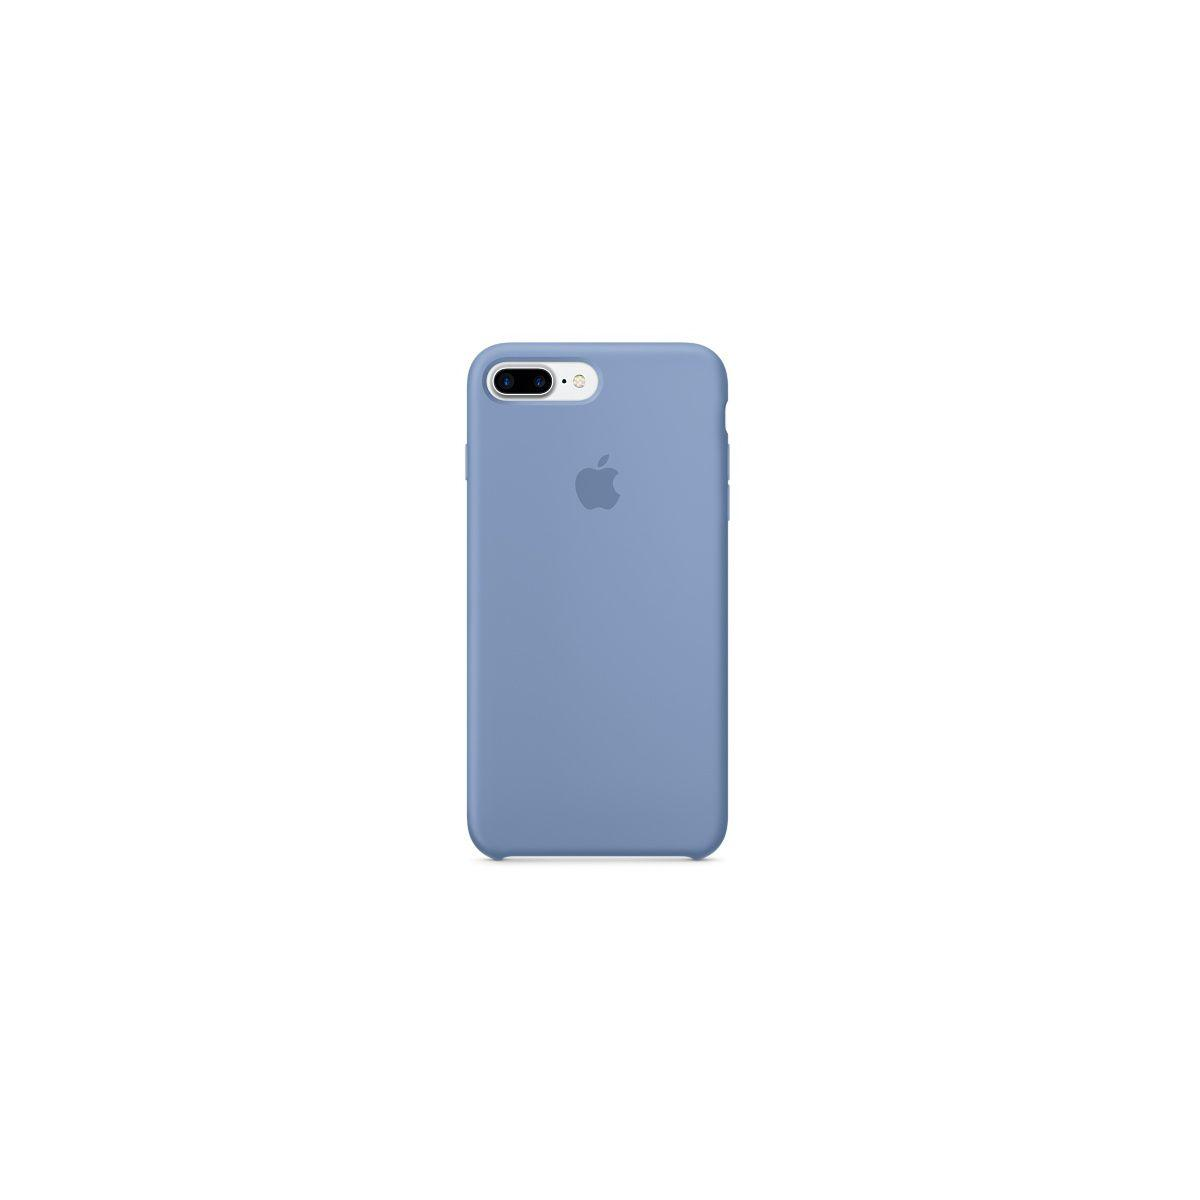 Coque apple iphone 7 plus silicone azur